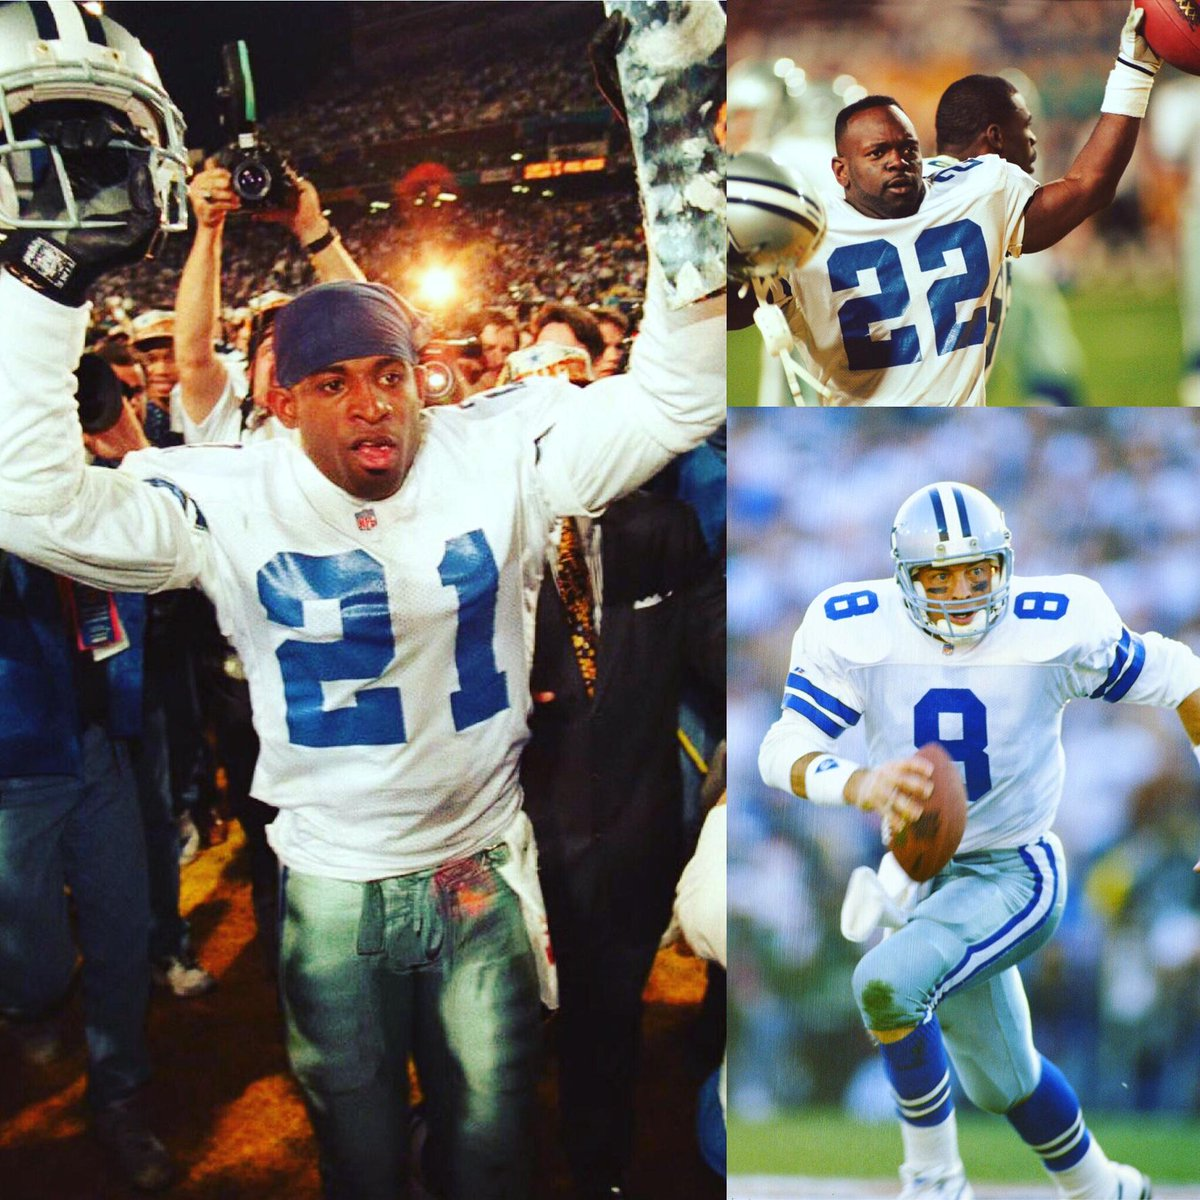 from Sincere super bowl xxx mvp